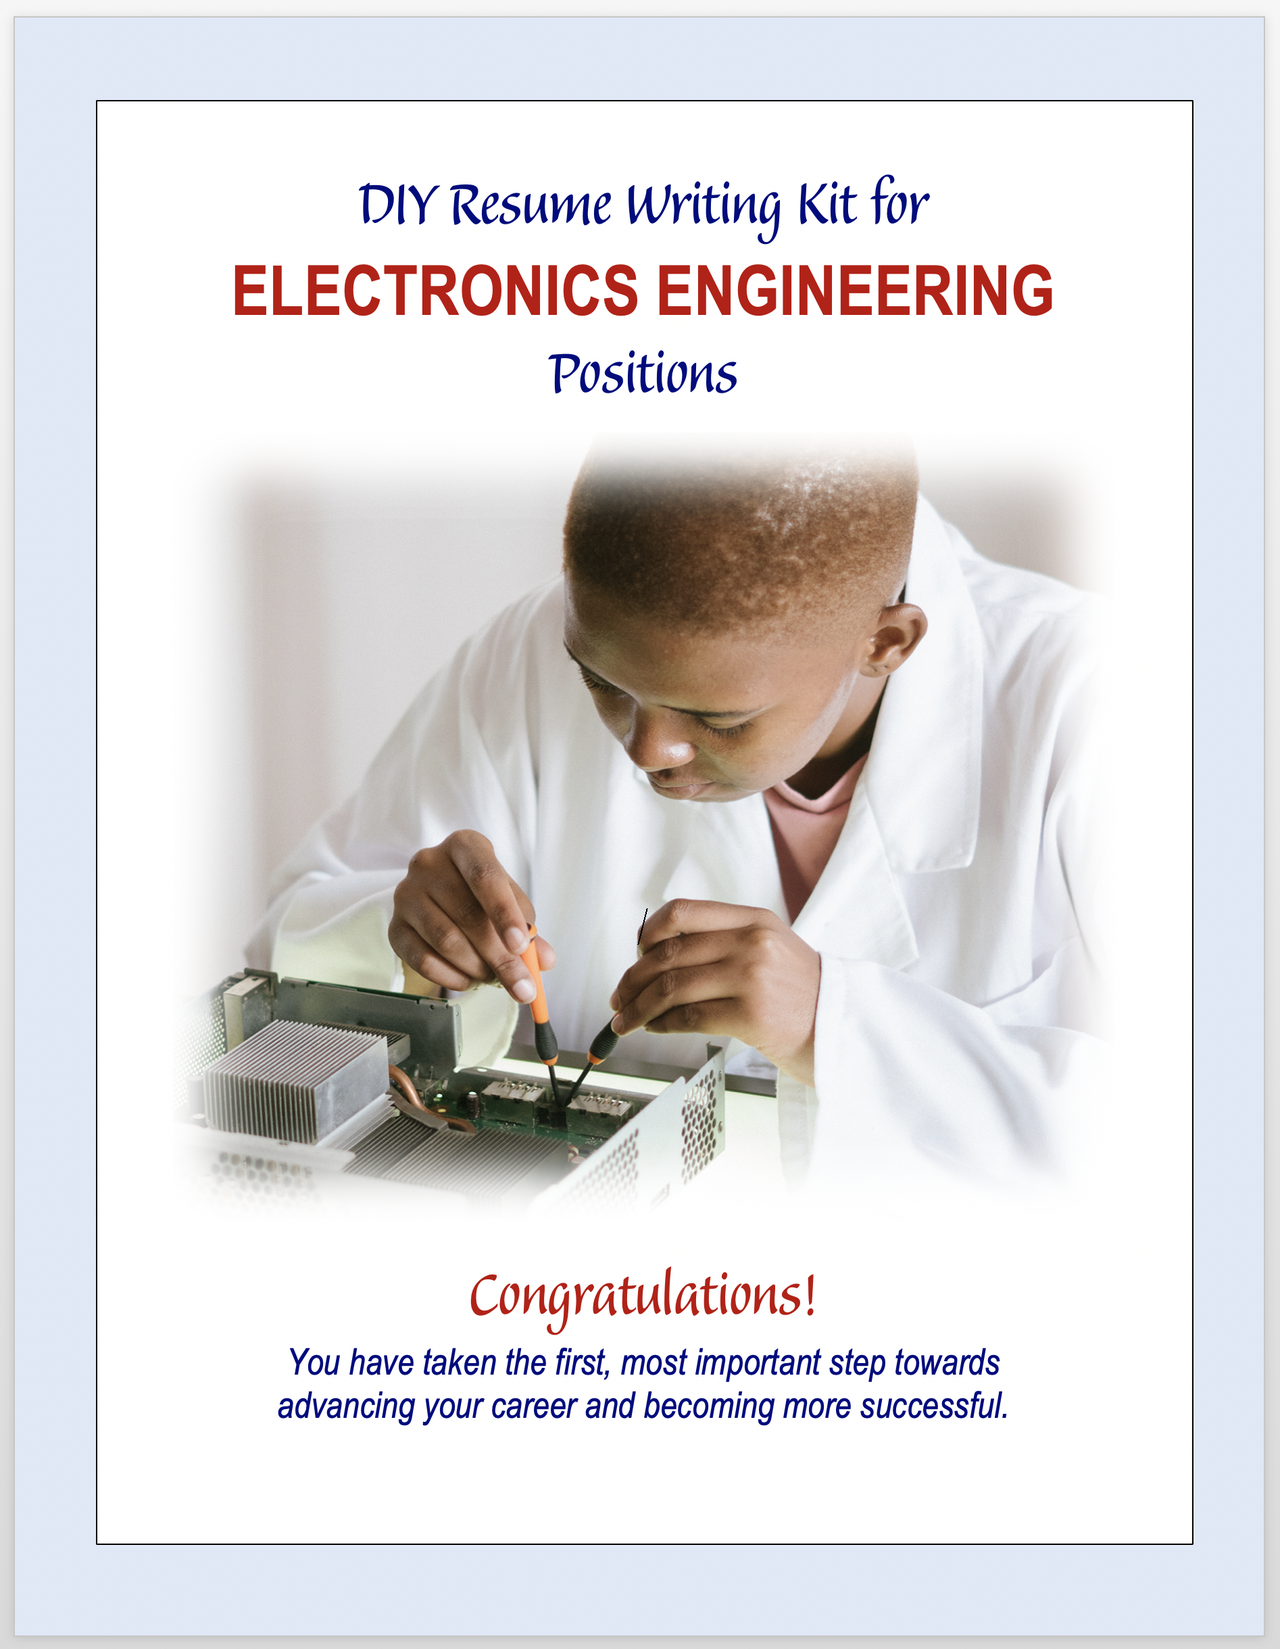 electronics engineering.png